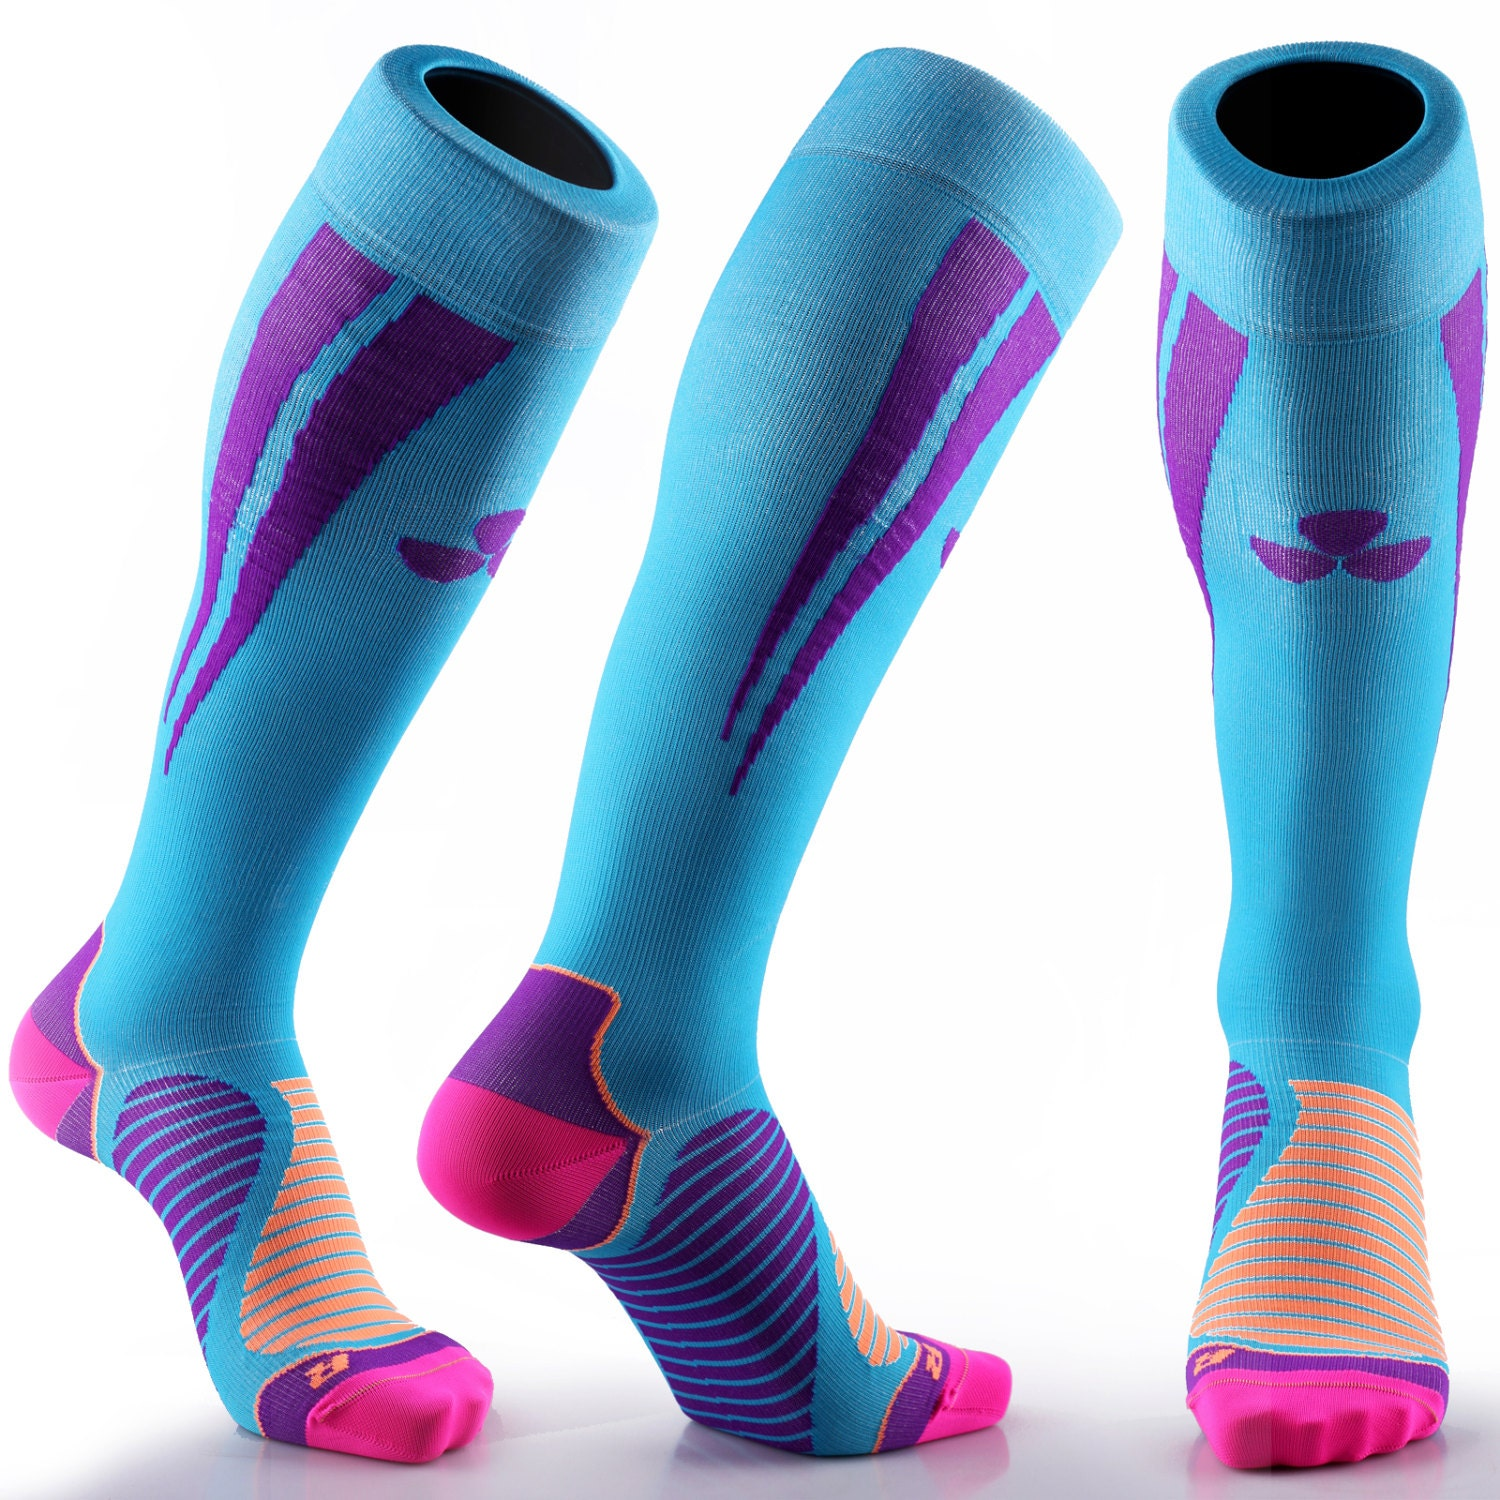 samson174 blue purple compression sports socks athletic running